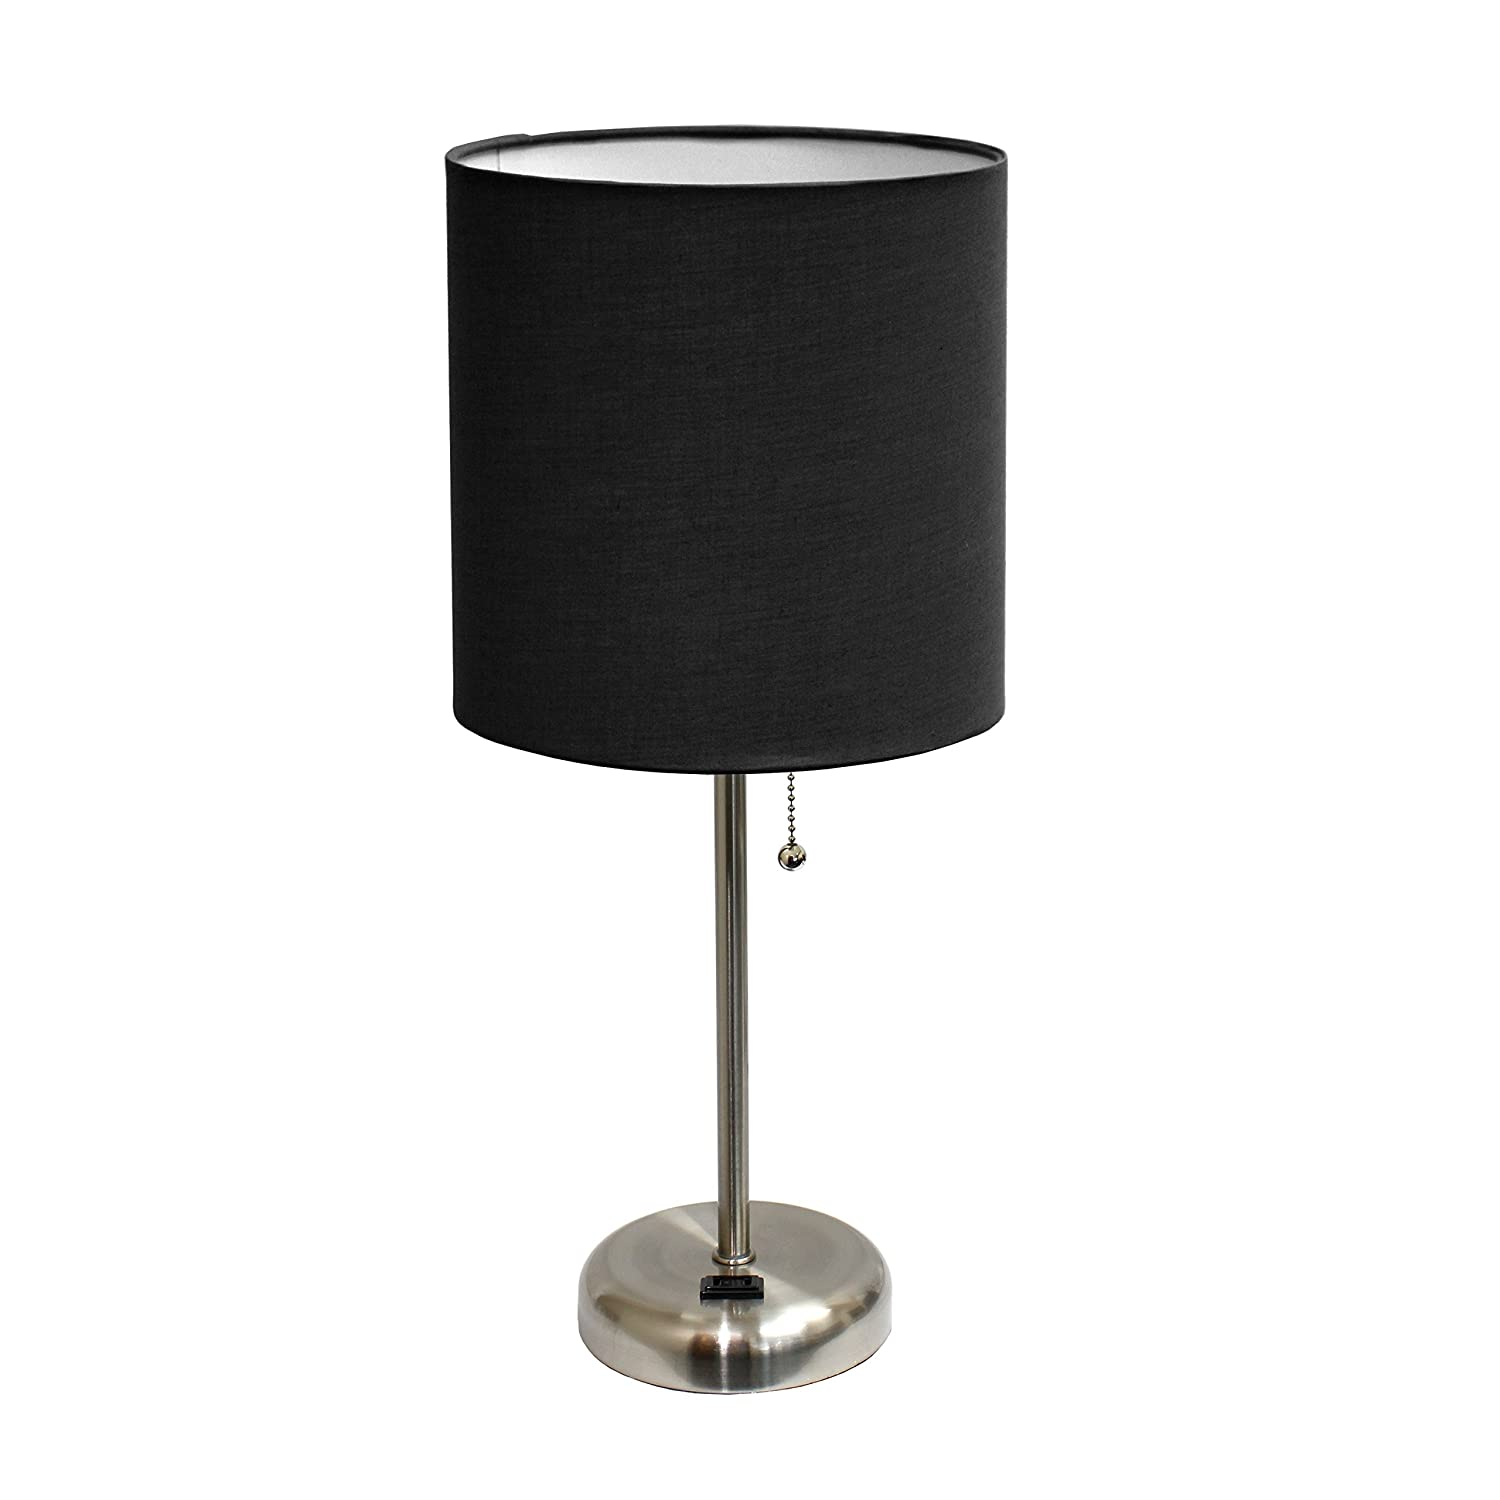 Limelights lt2024 blk brushed steel lamp with charging outlet and limelights lt2024 blk brushed steel lamp with charging outlet and fabric shade black amazon geotapseo Images